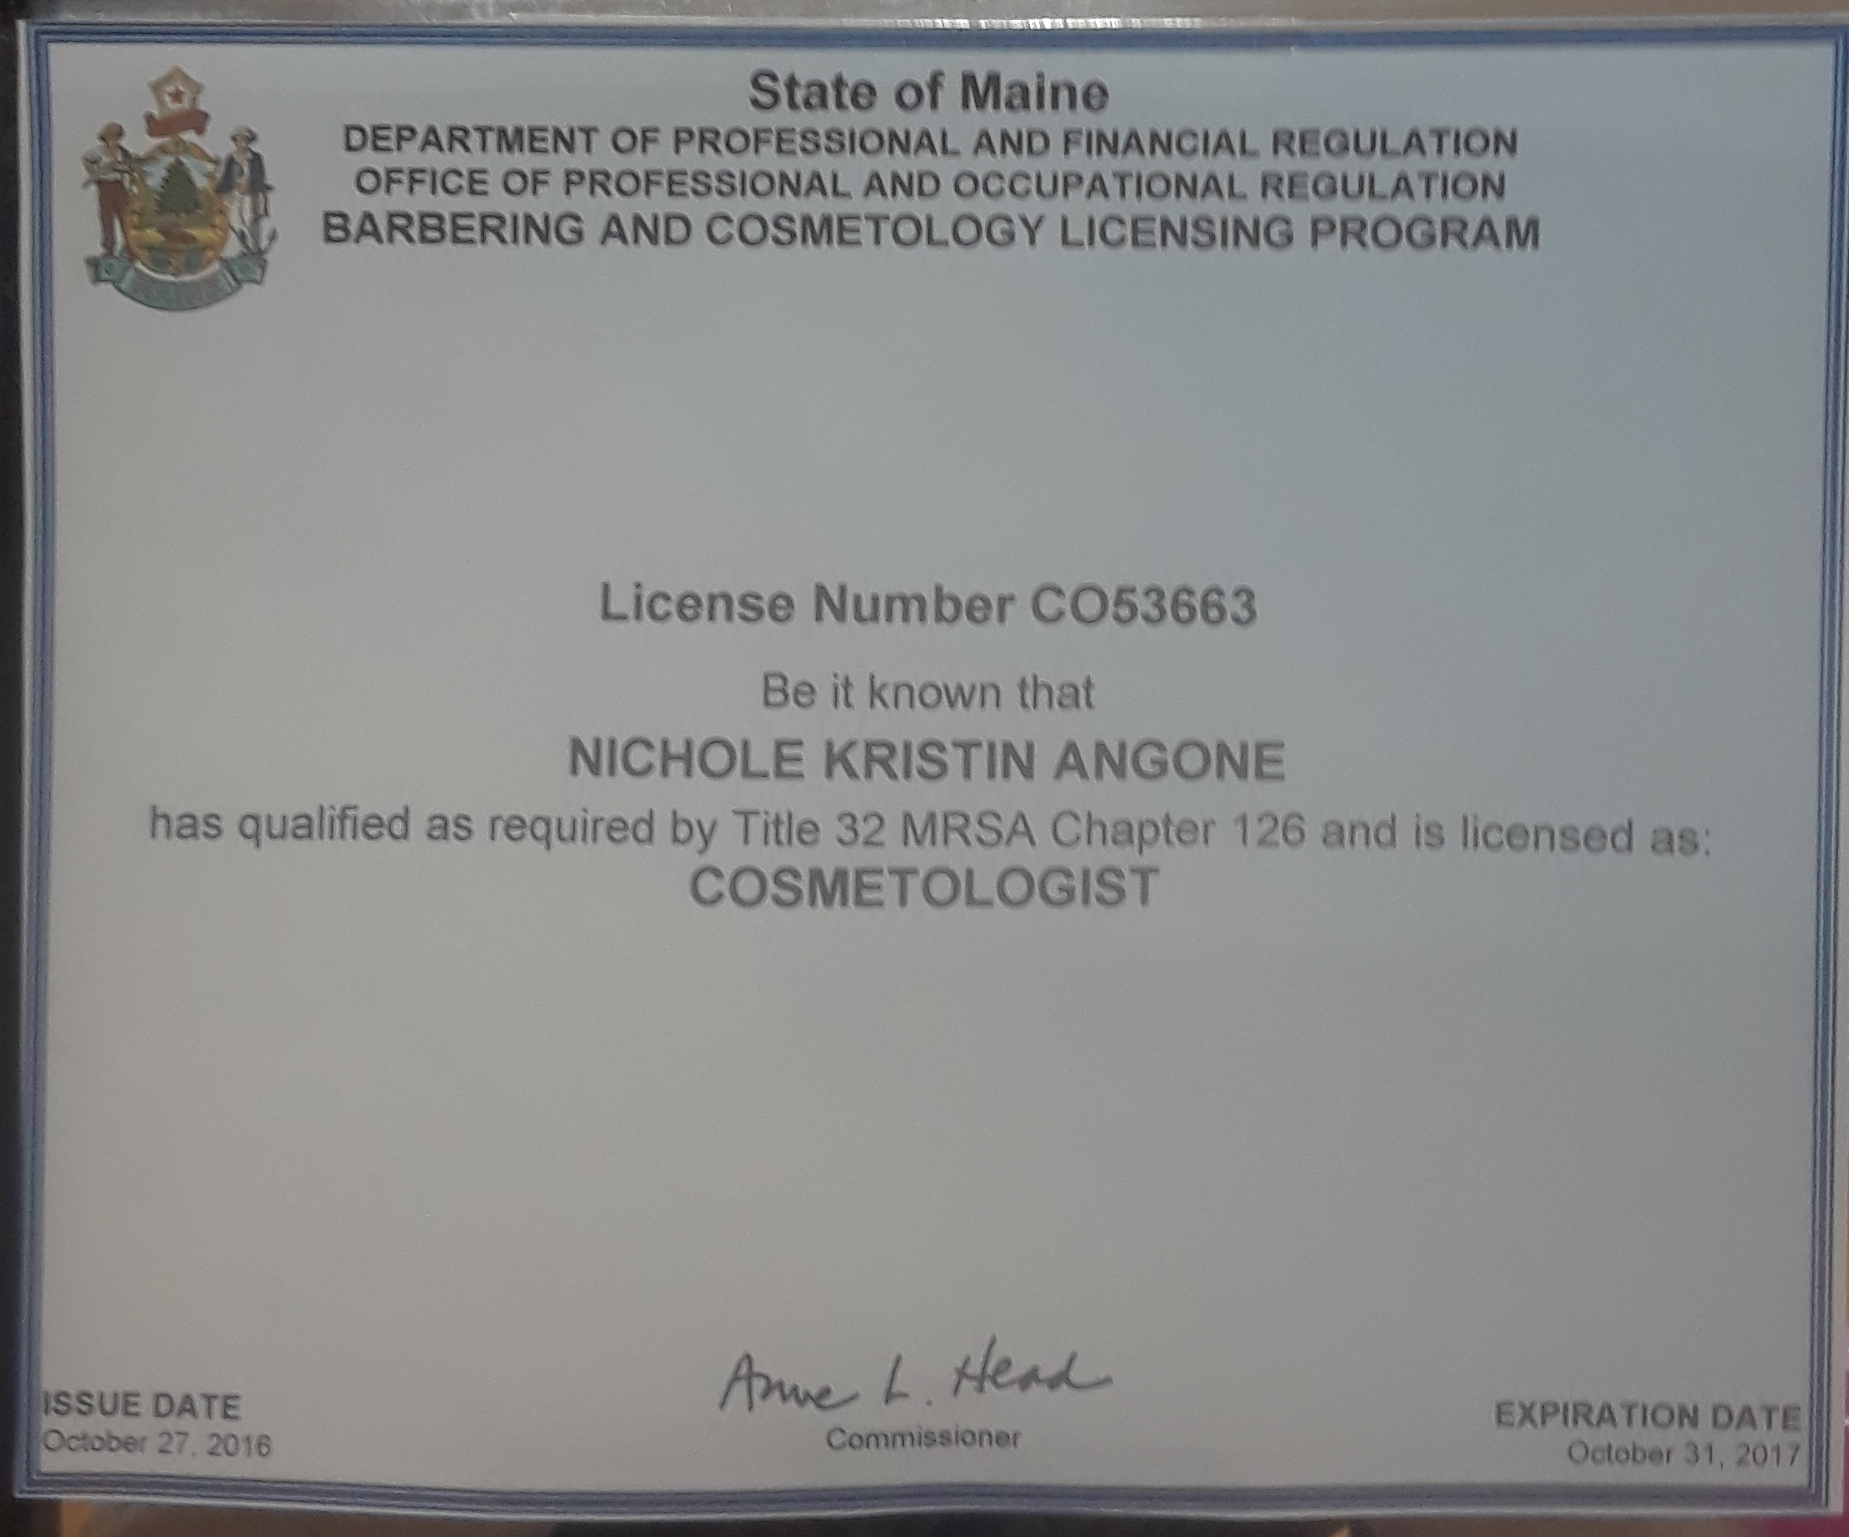 Nichole's Cosmetologist License